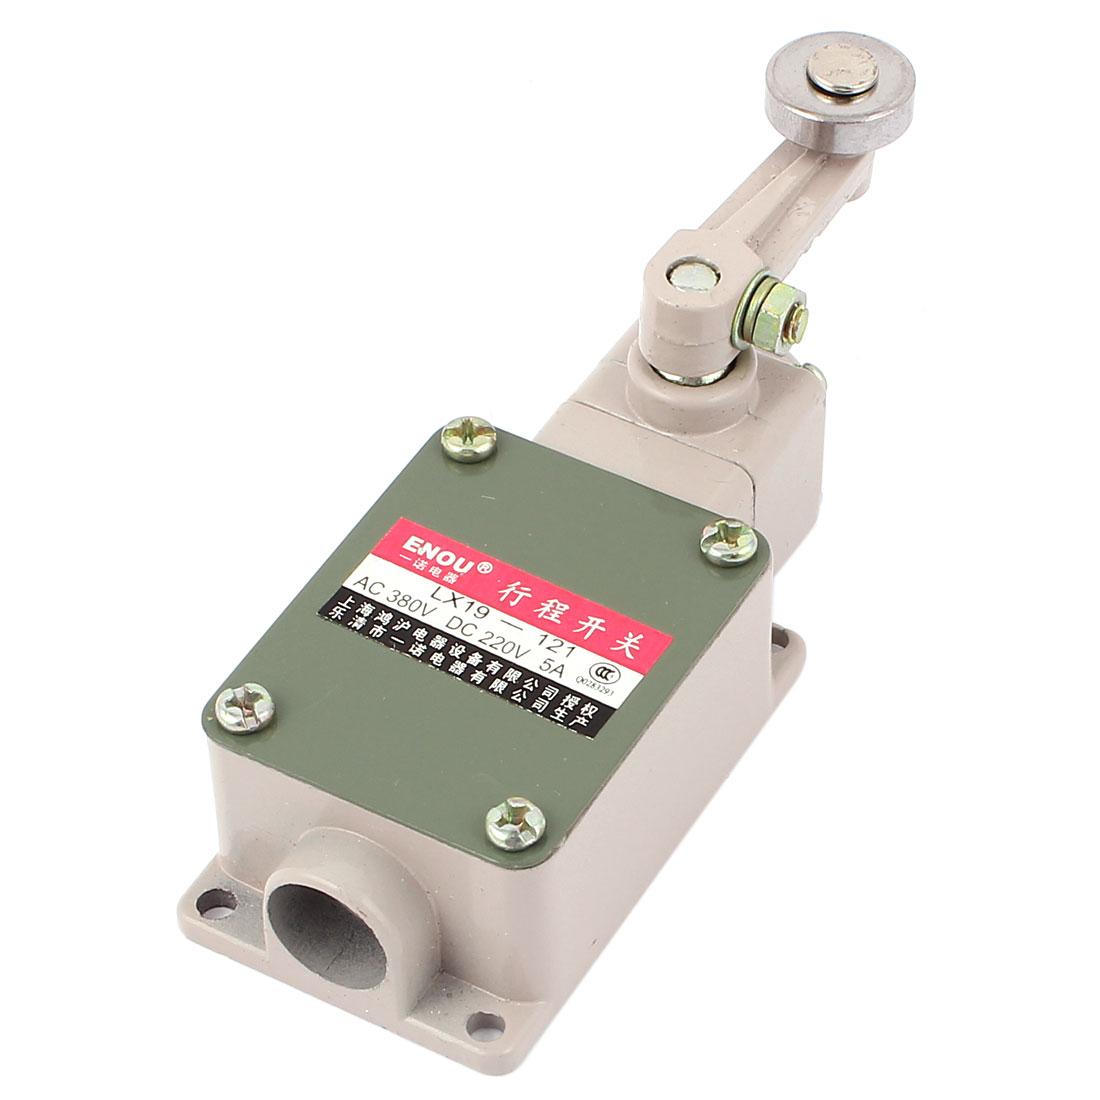 LX19-121 AC 380V DC 220V DPST 1NO 1NC Rotary Roller Lever Limit Switch